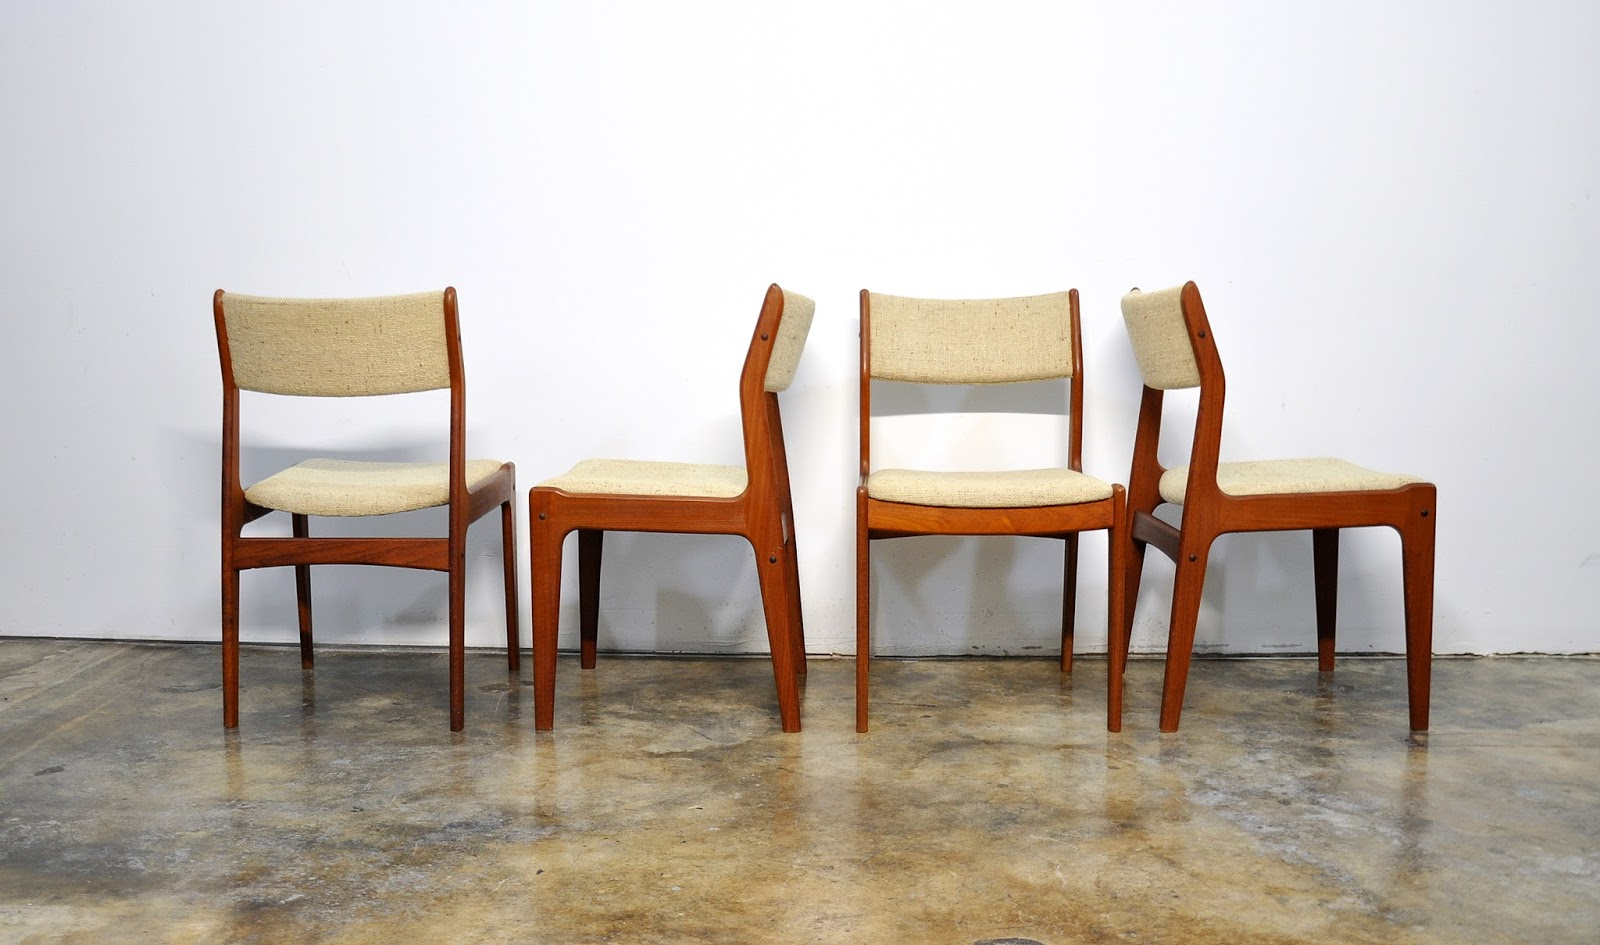 Scandinavian Chair Select Modern Set Of 4 Danish Modern Teak Dining Chairs